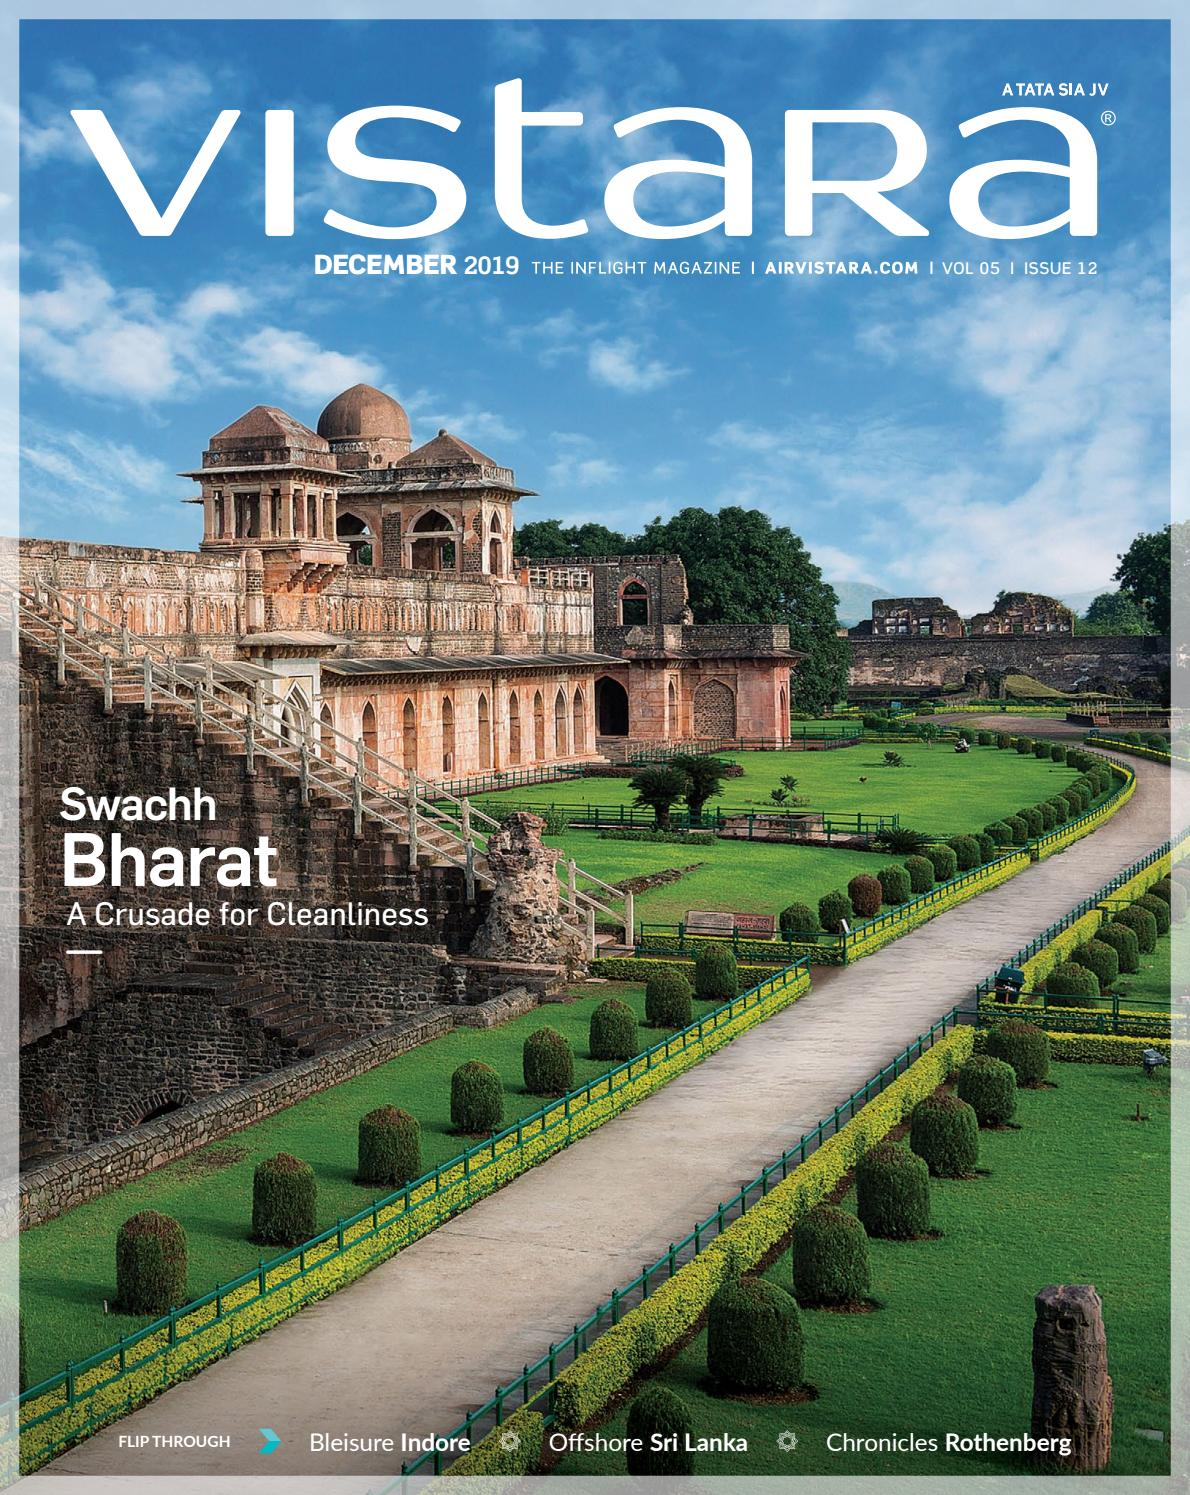 Vistara Inflight Magazine - Vistara Airline December 2019 regarding Julian Date Converter Online Workafella